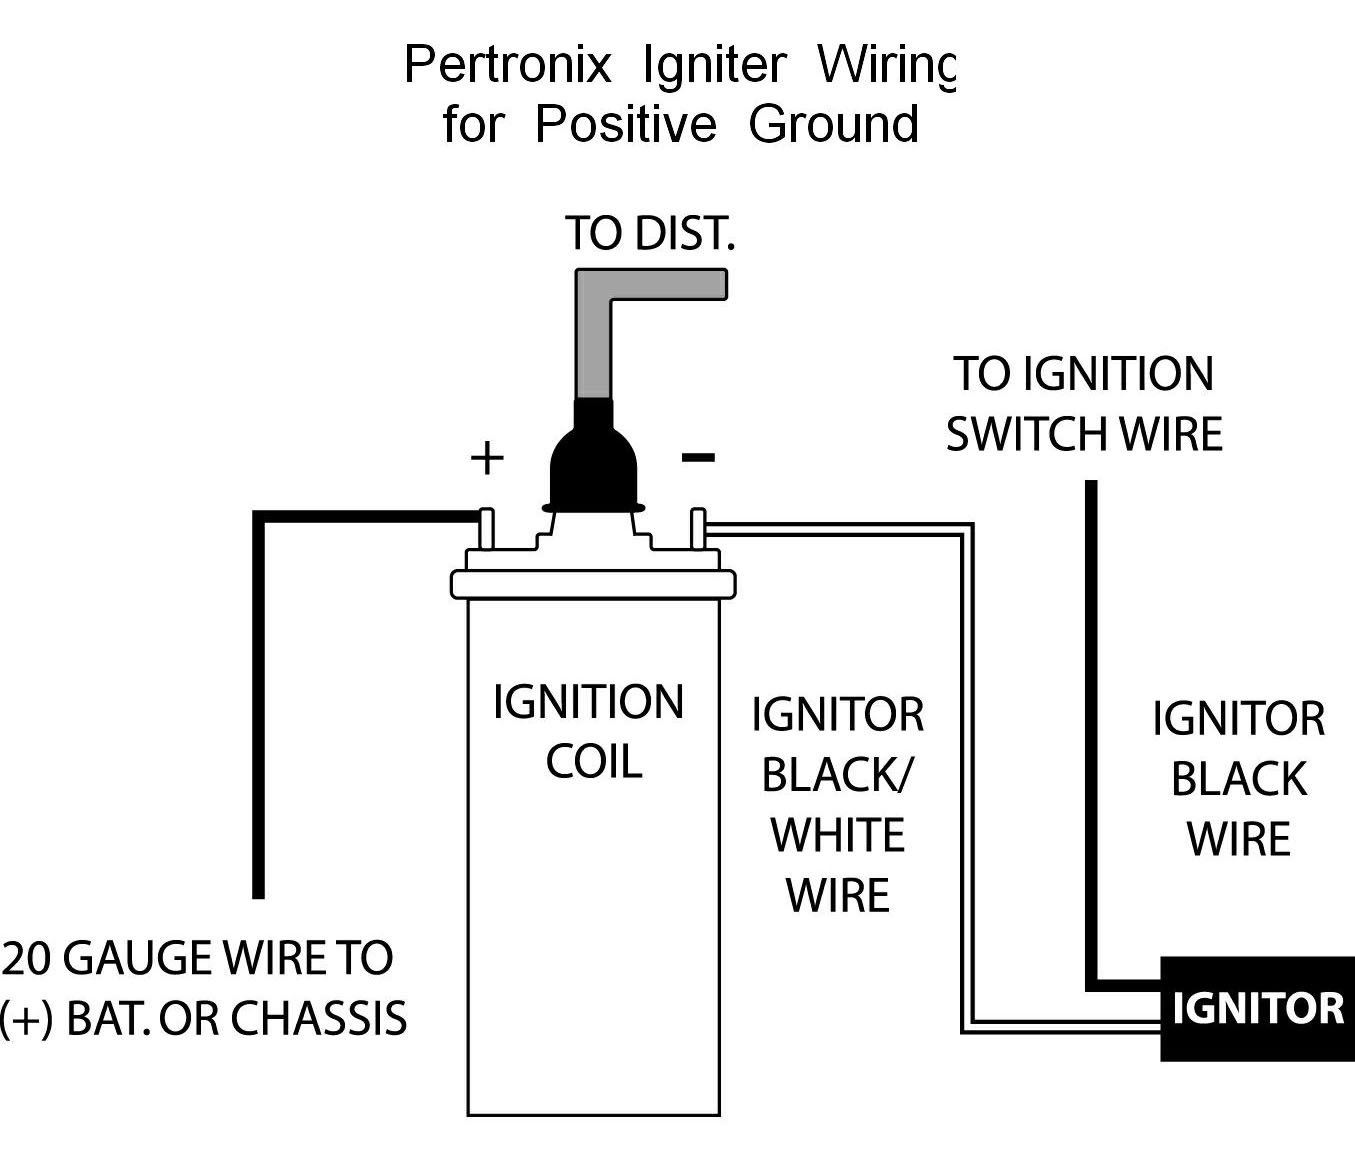 pertronix positive ground wiring probably the most significant thing to note is that the pertronix igniter module is connected between the coil and the ignition line not between the coil